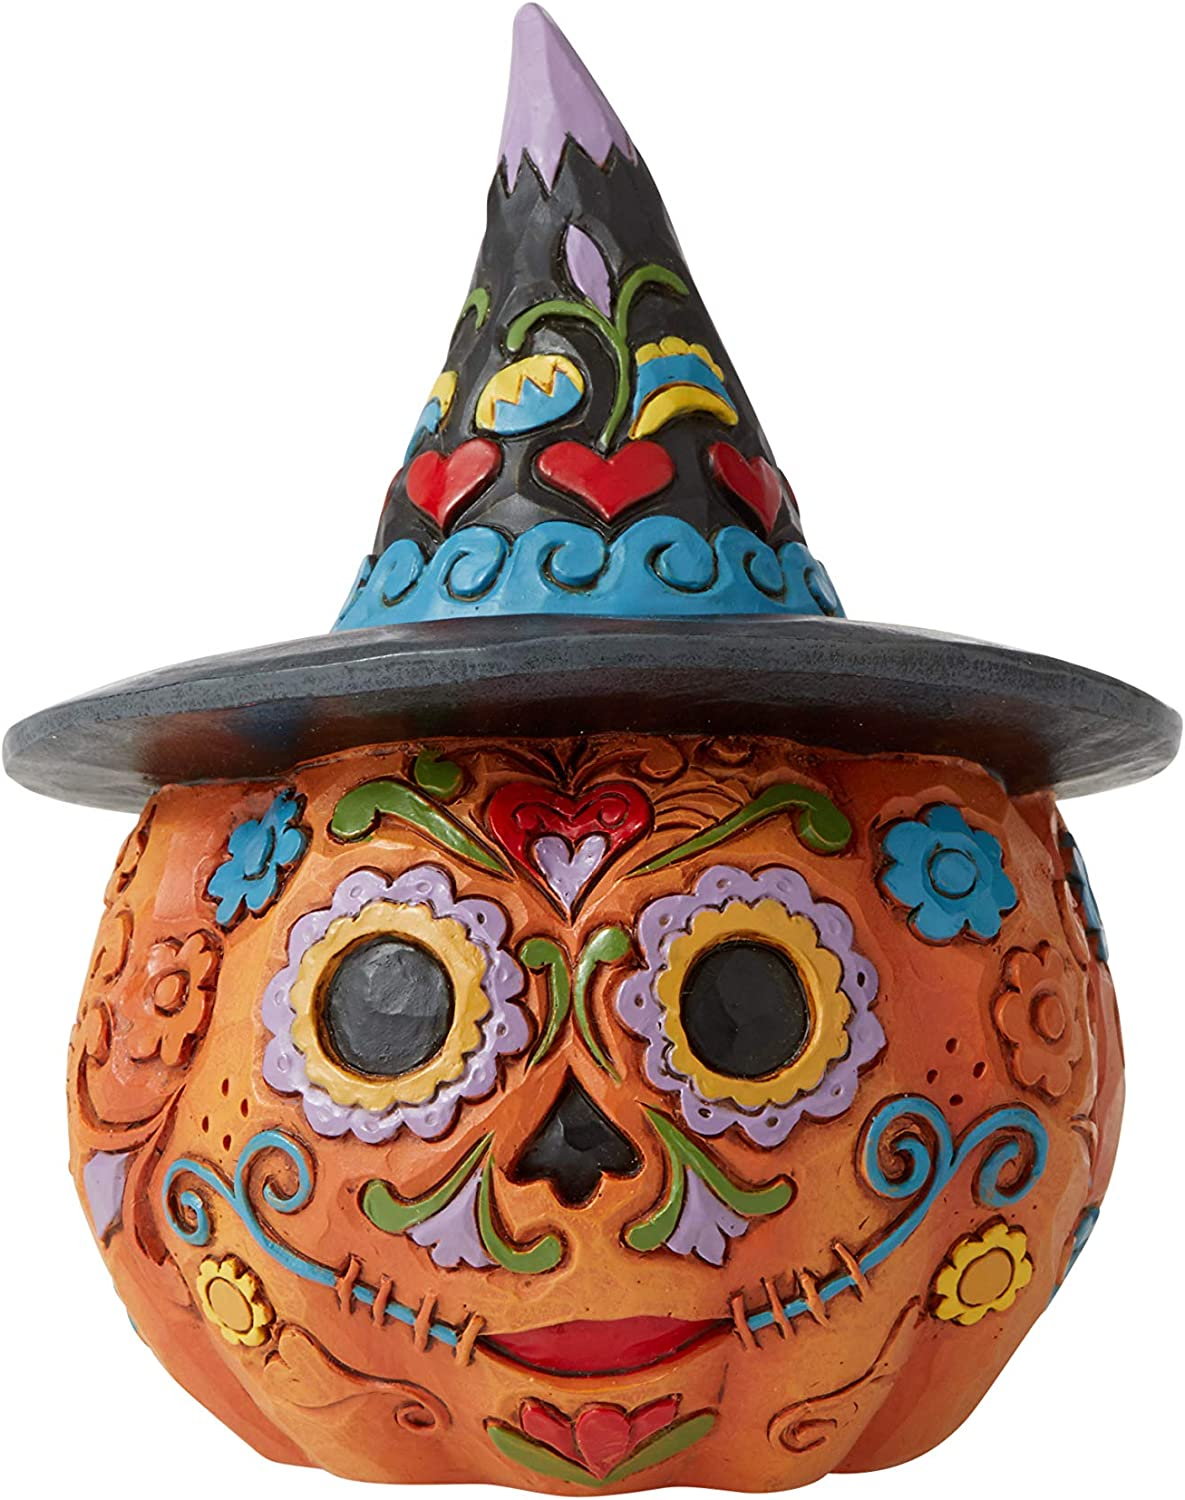 Enesco Jim Shore Heartwood Creek Day of The Dead Pumpkin Mini Figurine